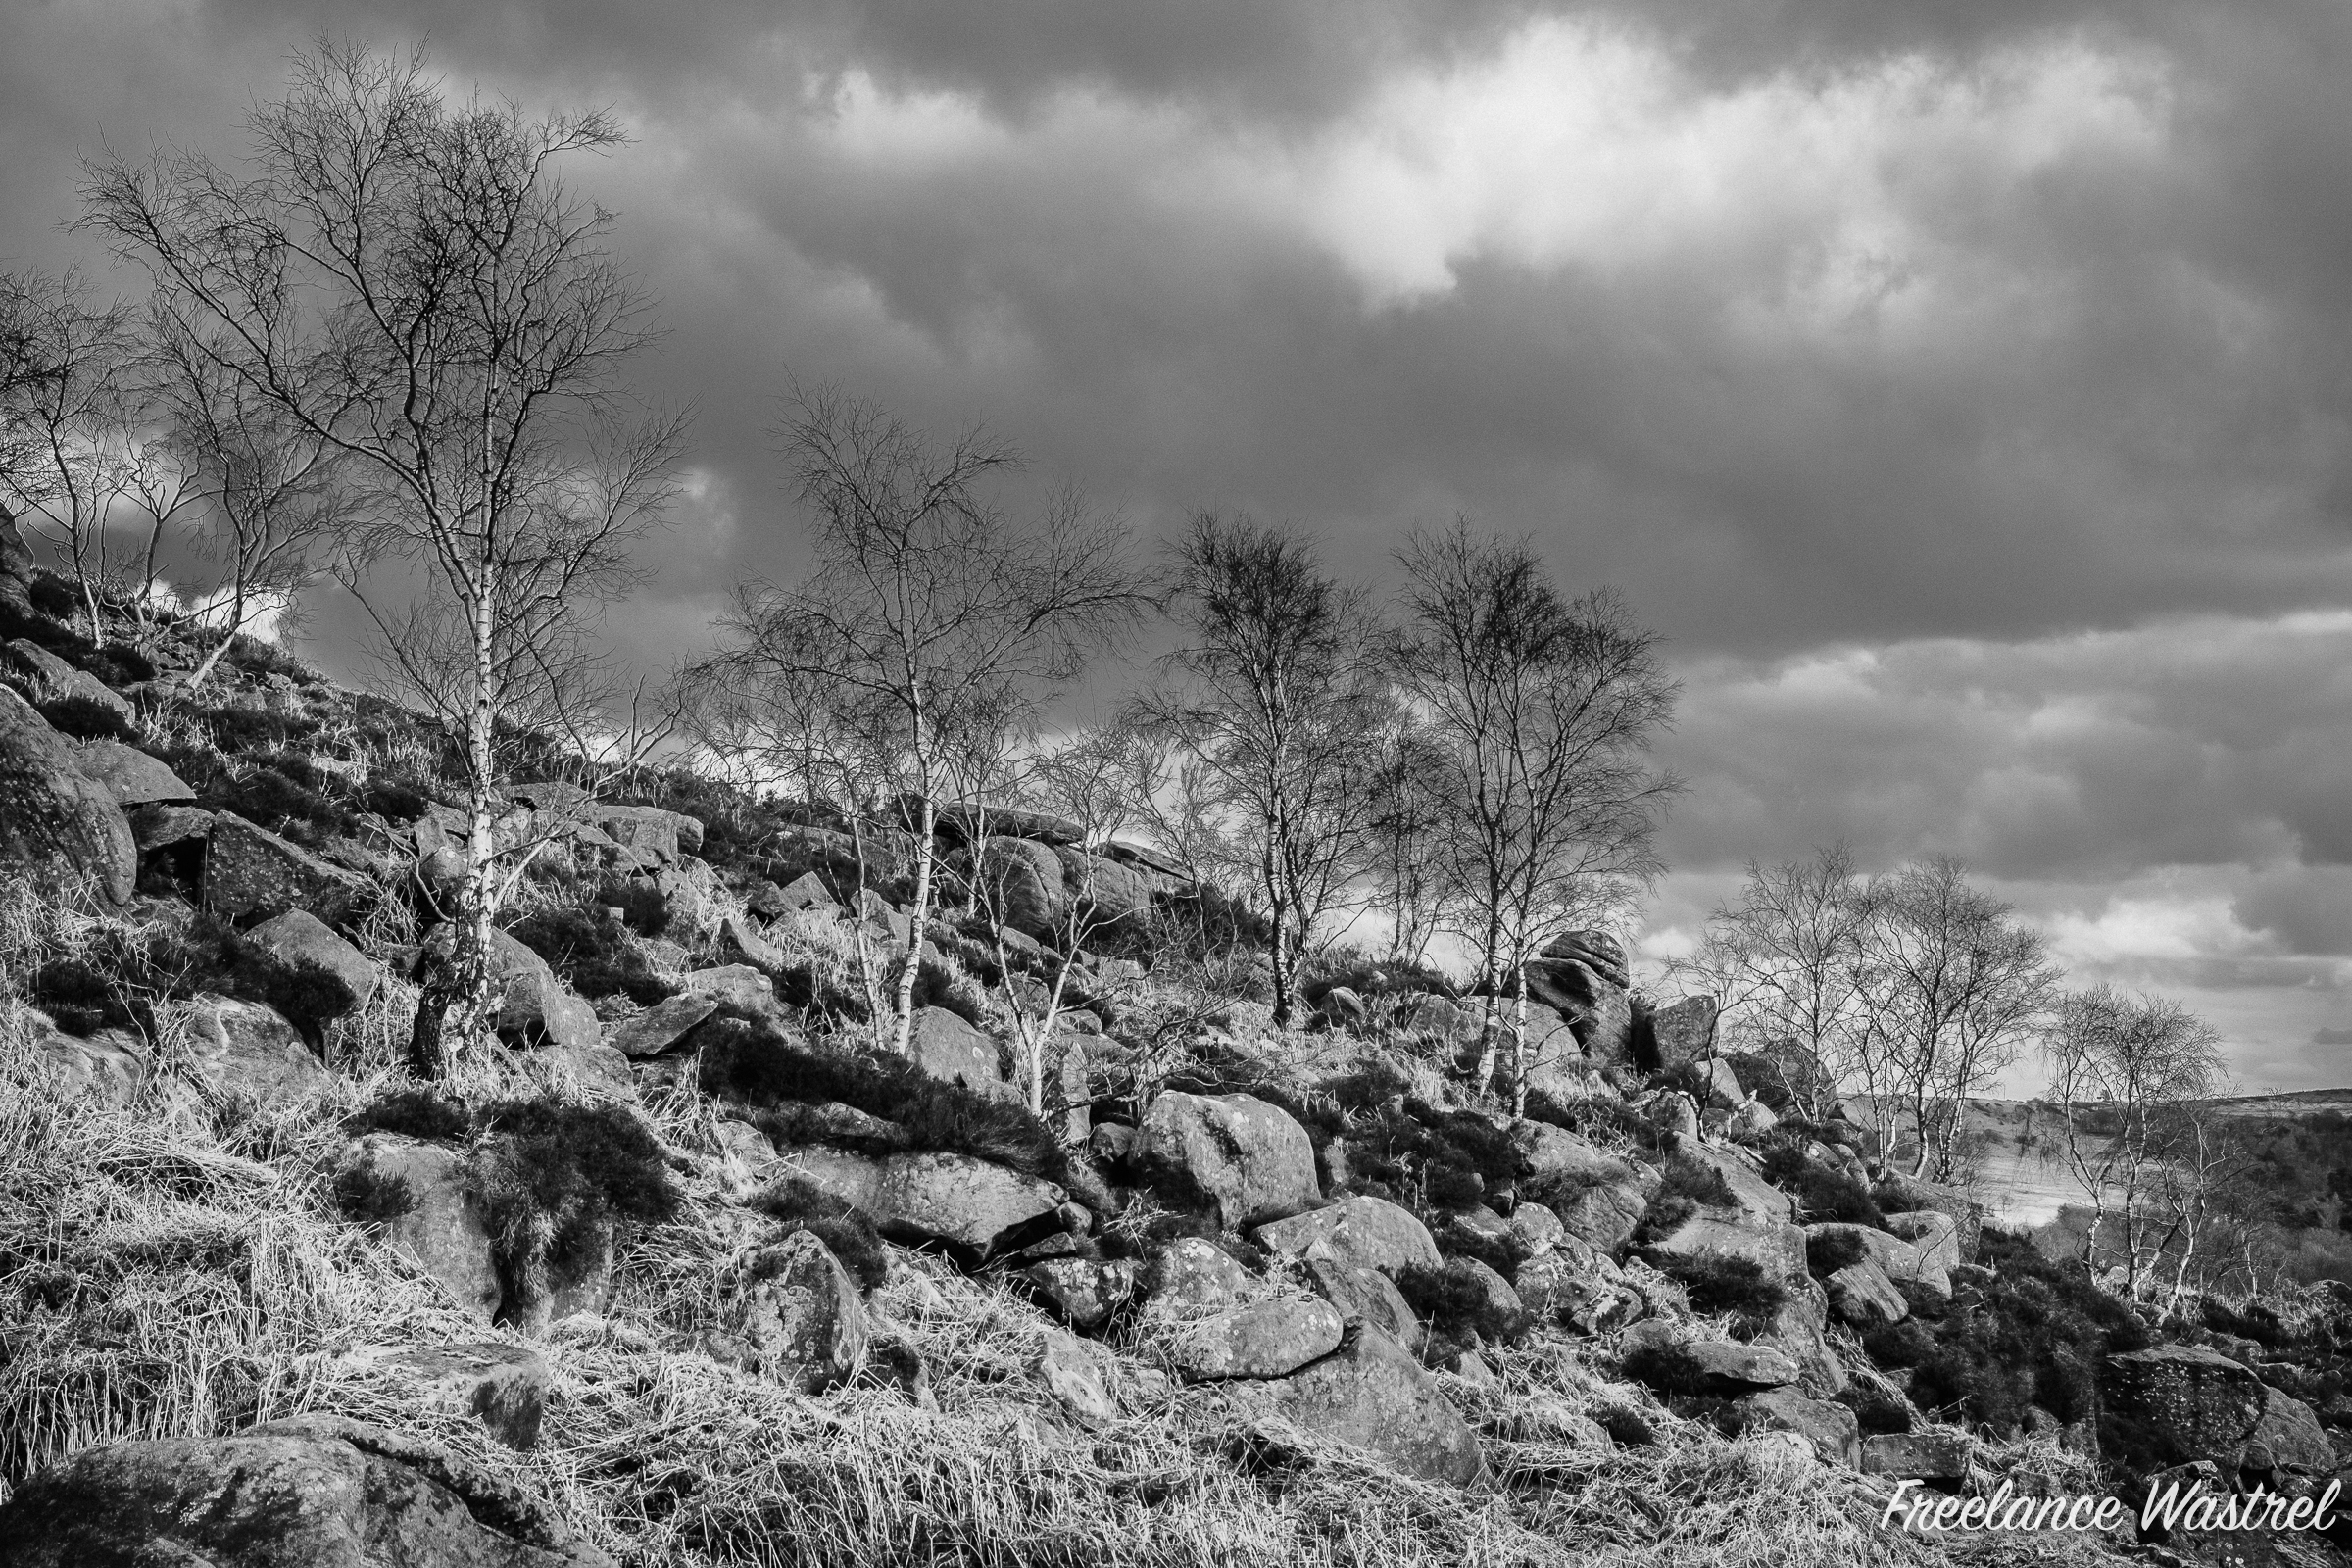 Hathersage Moor, March 2020